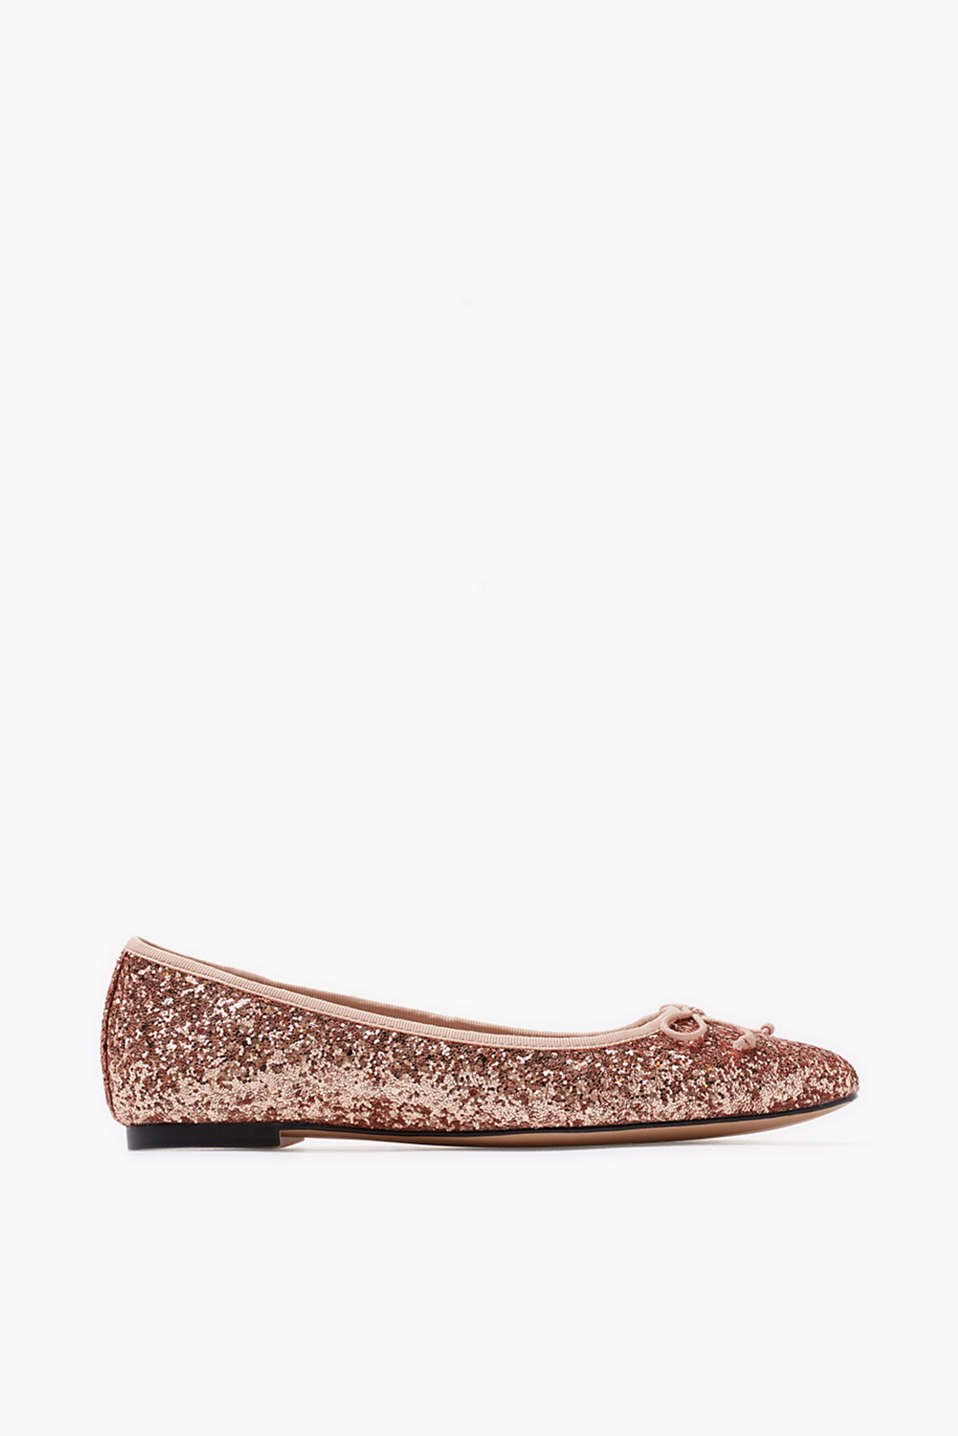 Ballerinas in a pointed design with an elegant, glittery look